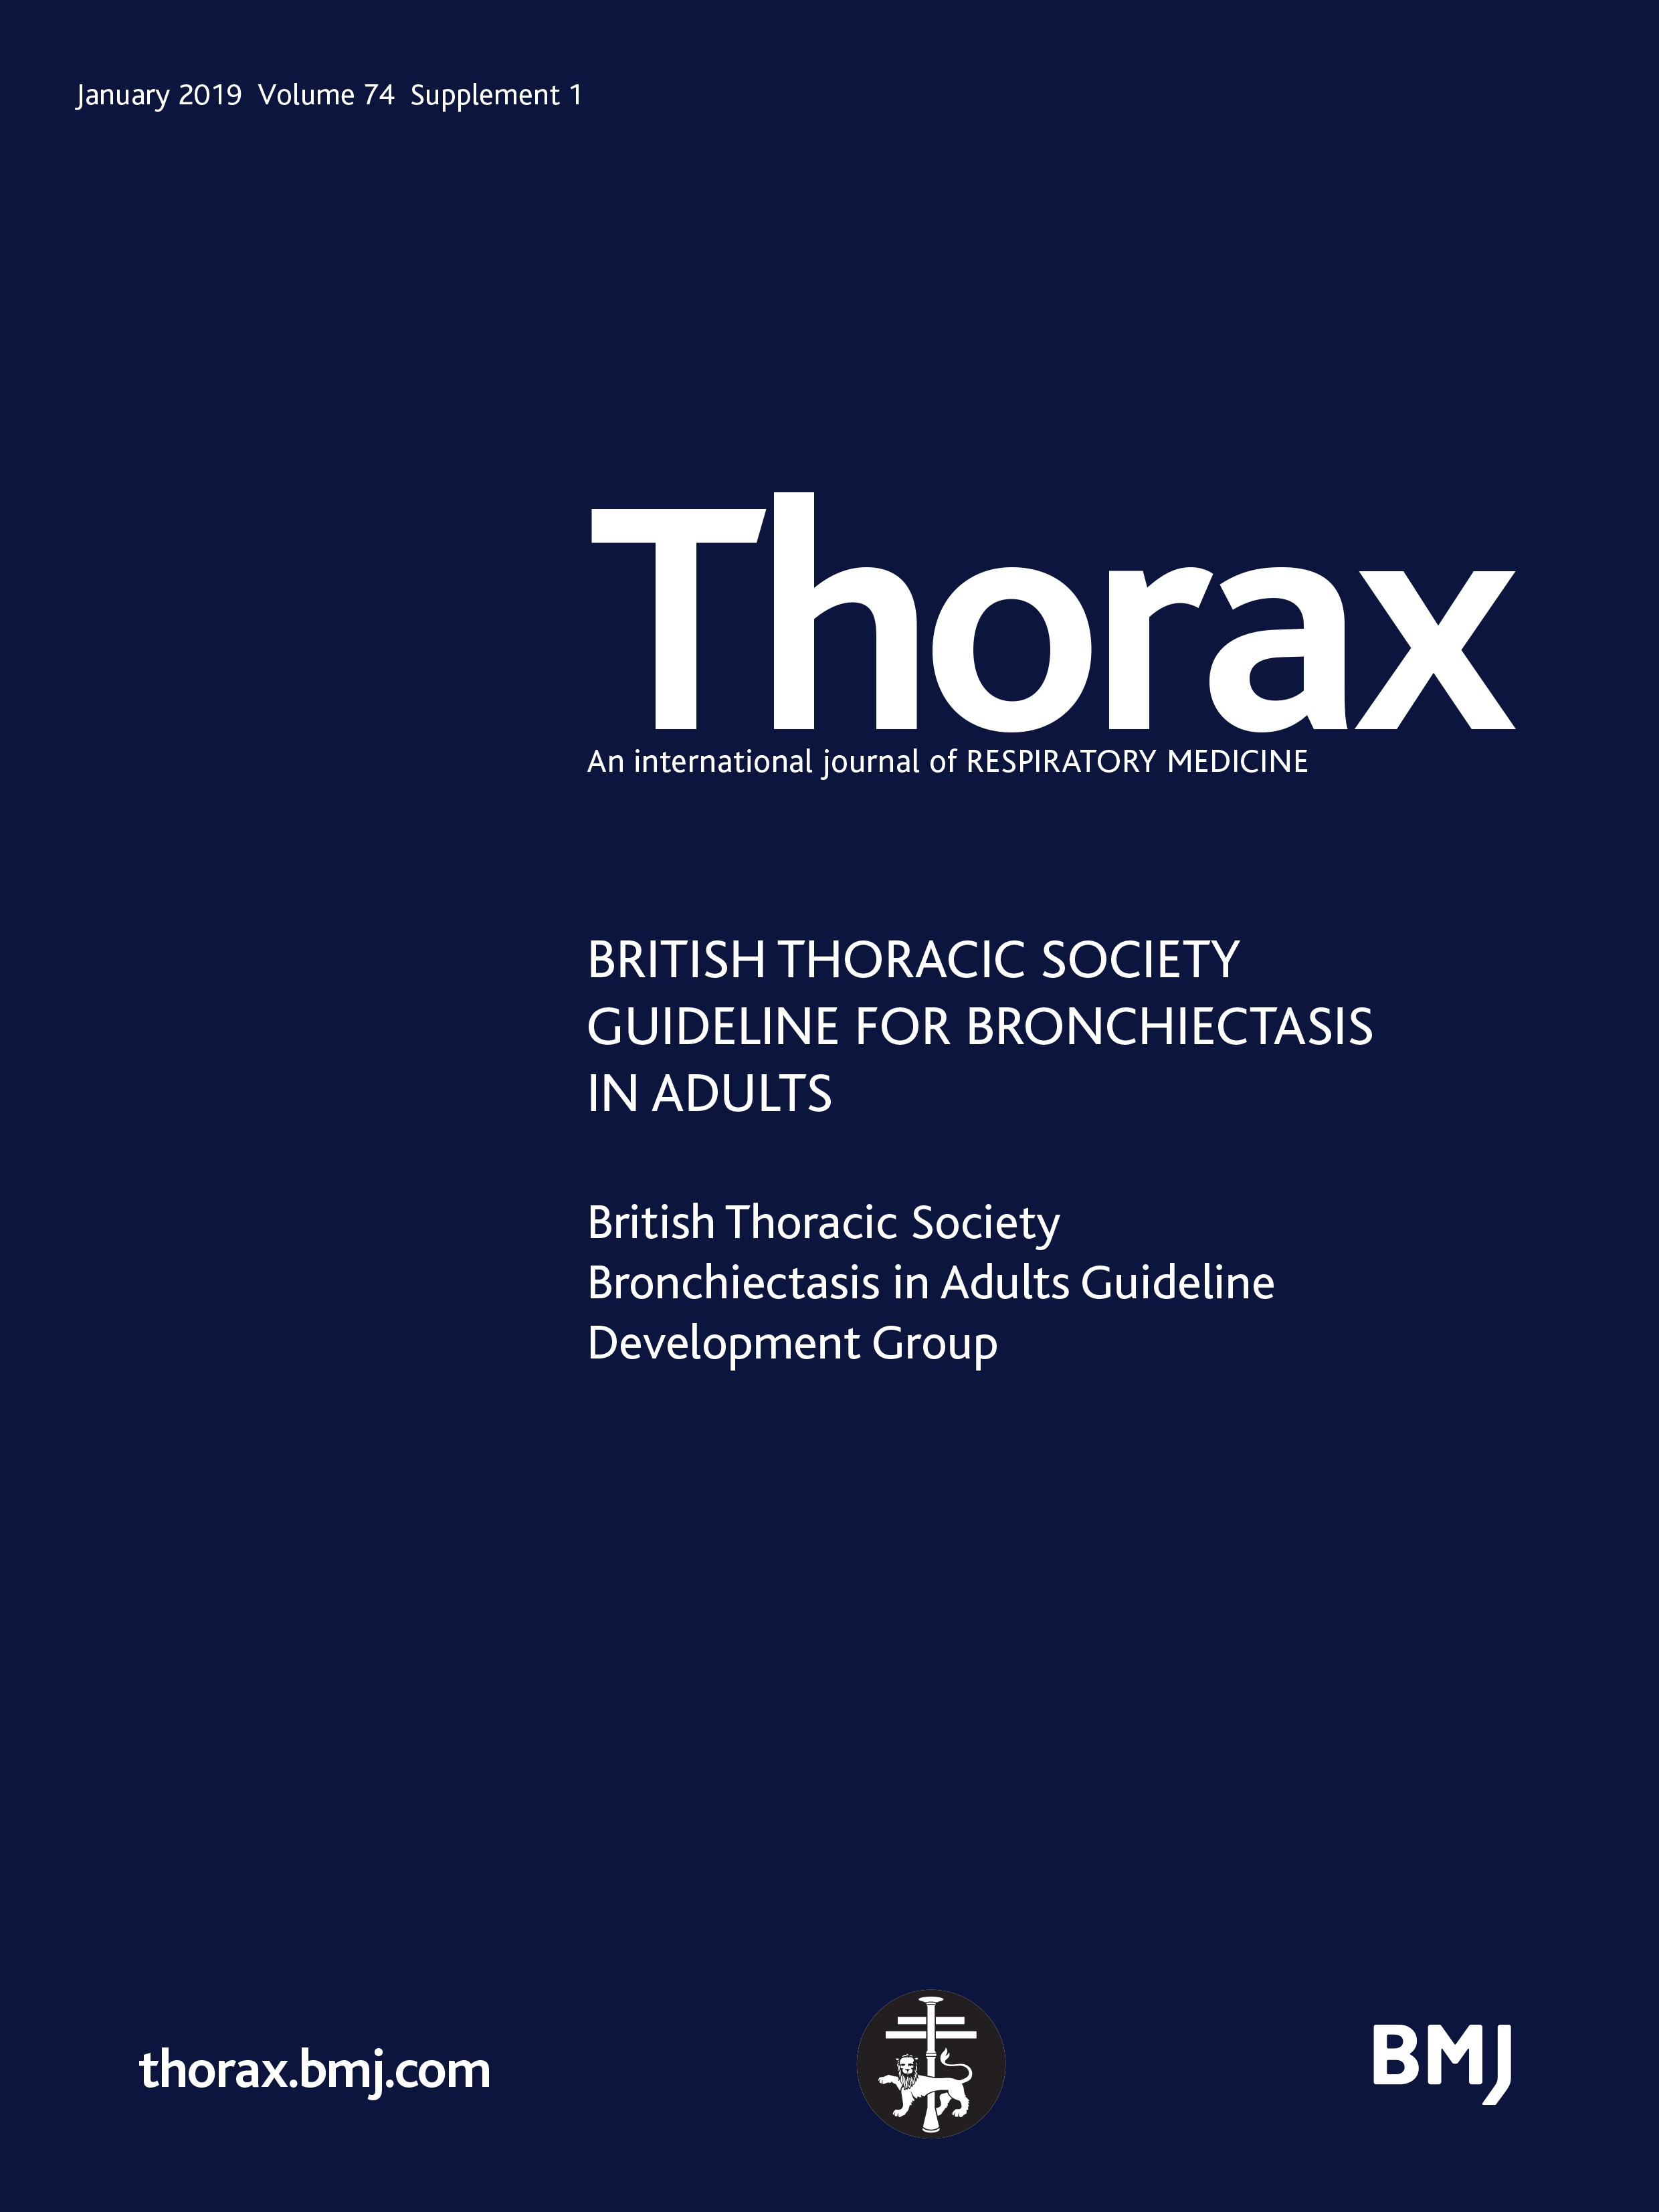 British Thoracic Society Guideline for bronchiectasis in